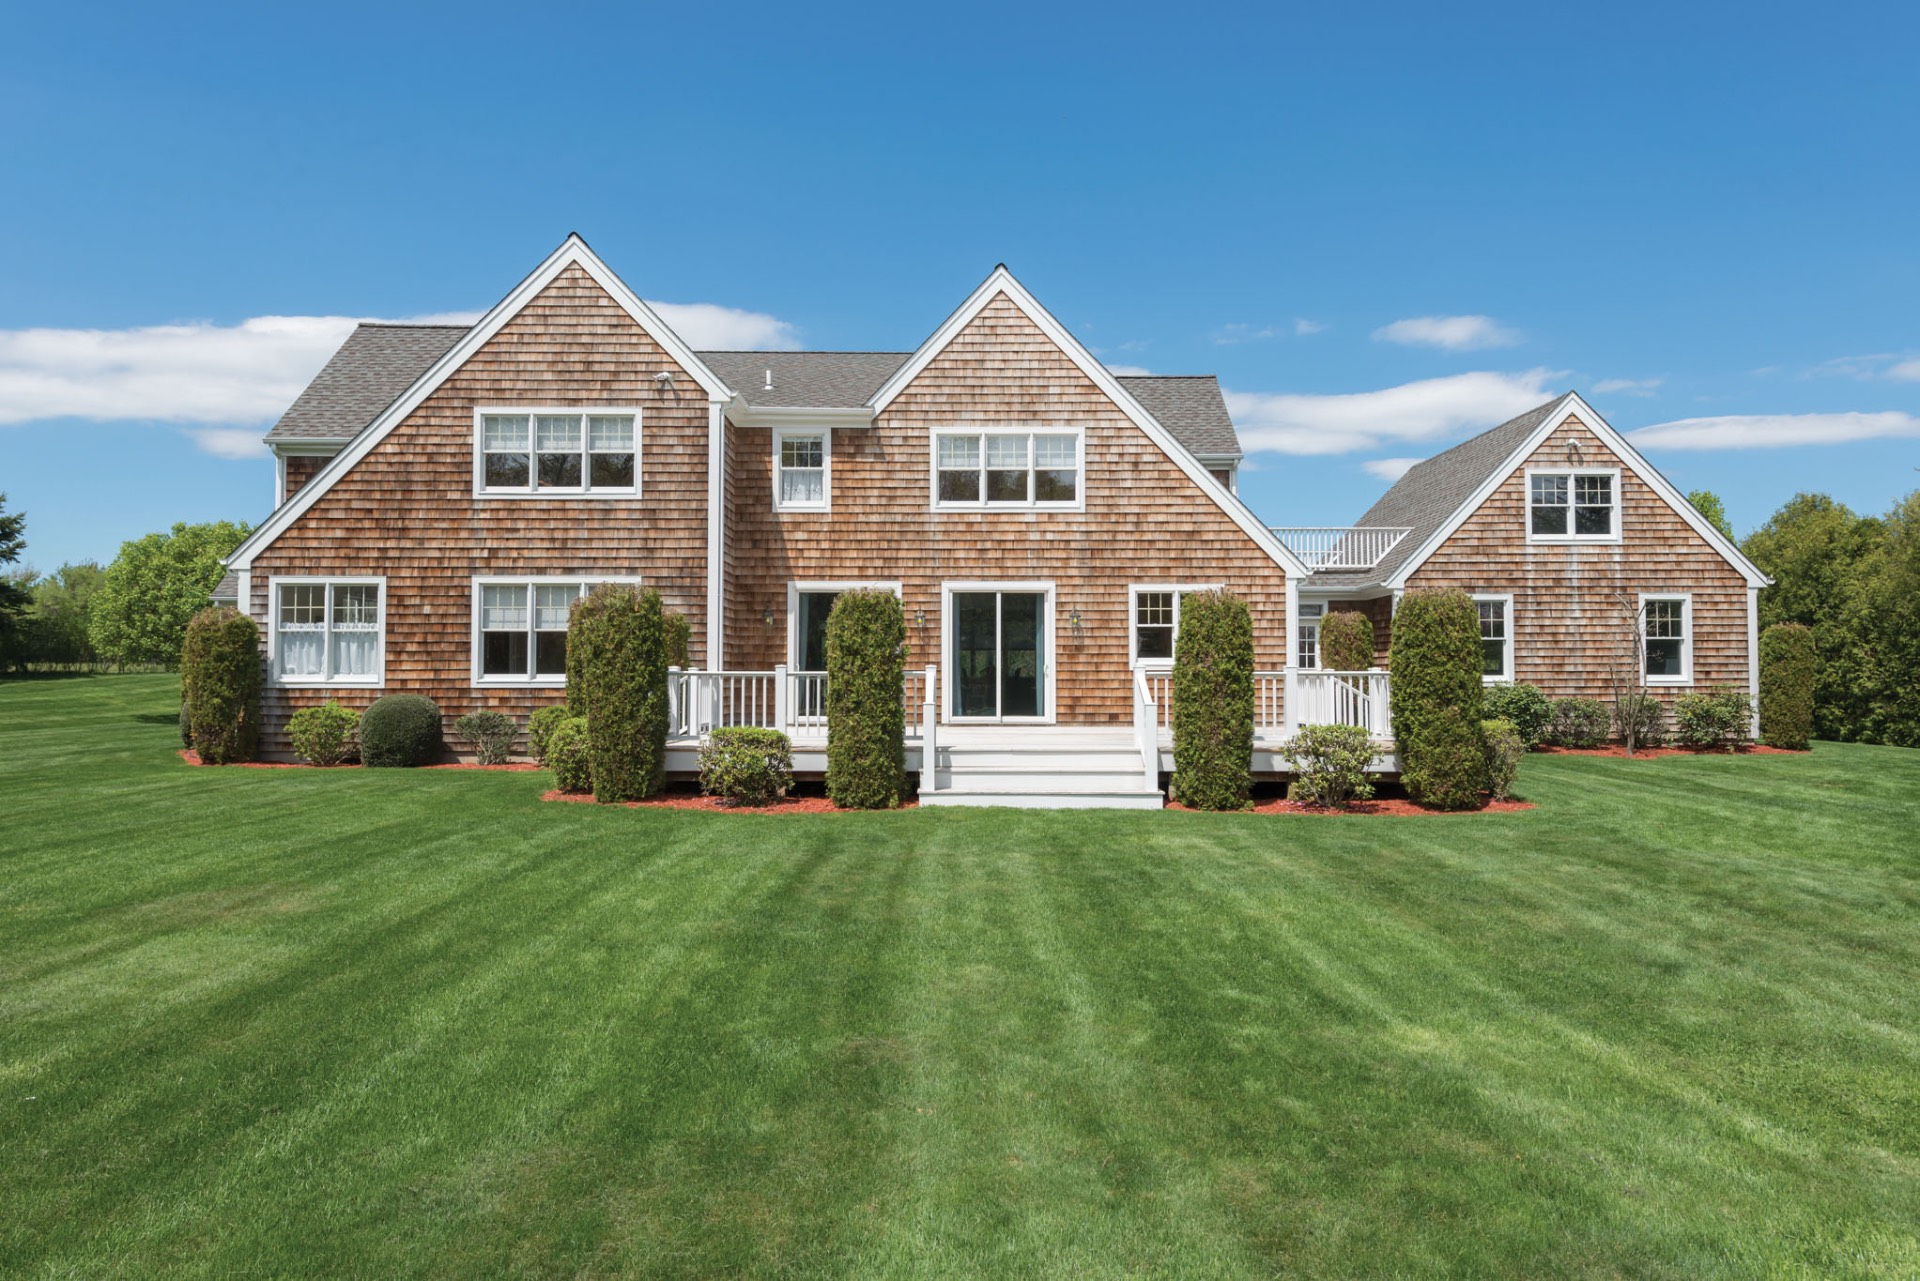 water mill divorced singles This single-family home is located at jule pond dr, water mill, ny is currently for sale and has been listed on trulia for 72 days this property is listed for $175,000,000.